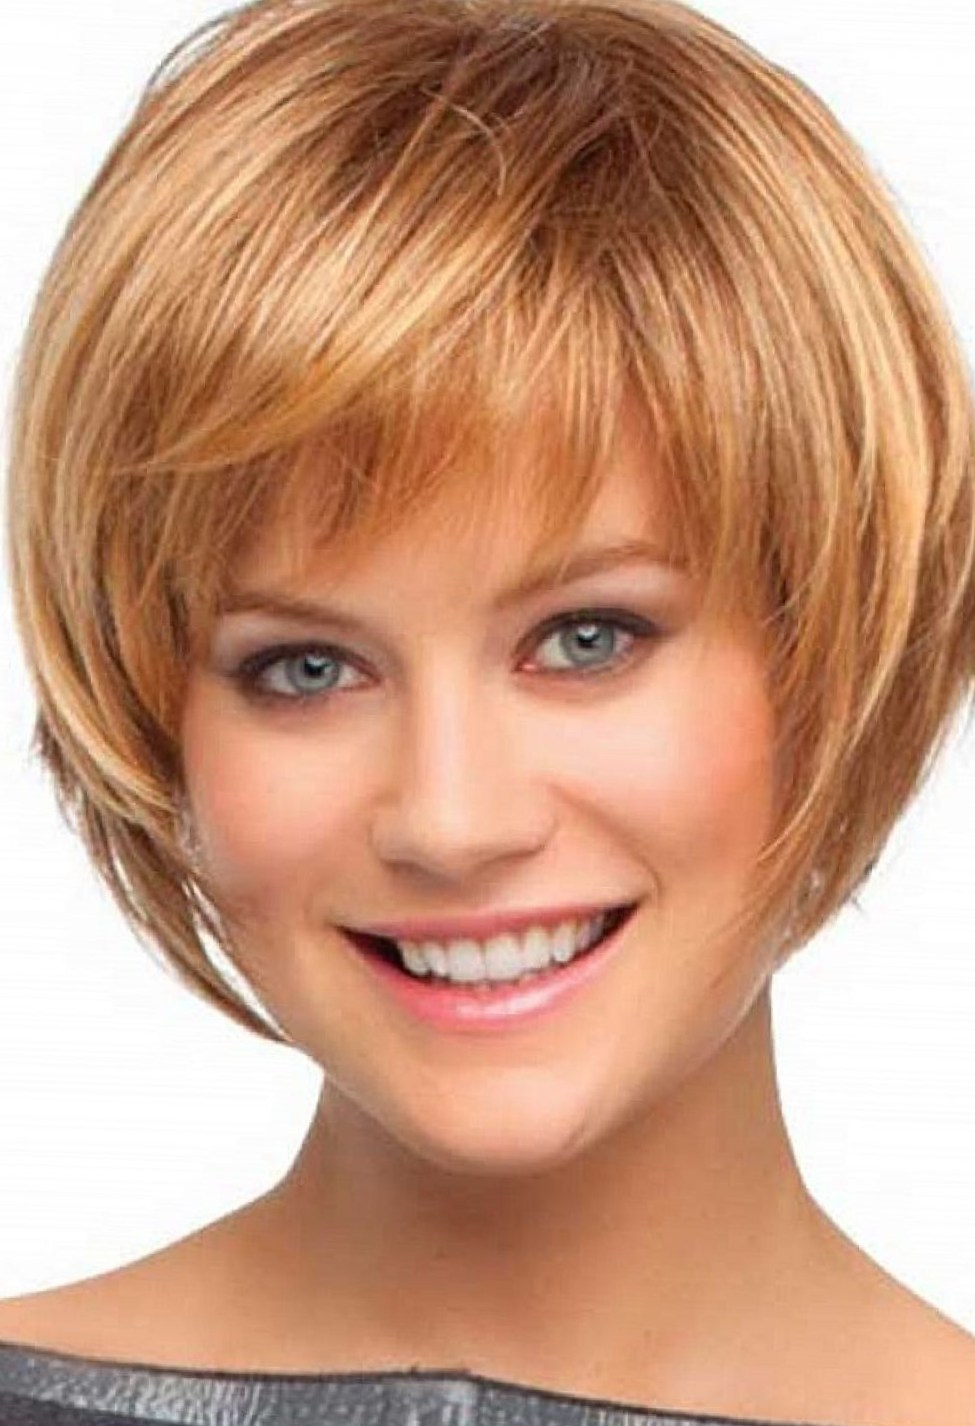 Hairstyles For Short Layered Hair With Side Bangs : Light Brown Layered Bob Hairstyles With Bangs For Short Hair